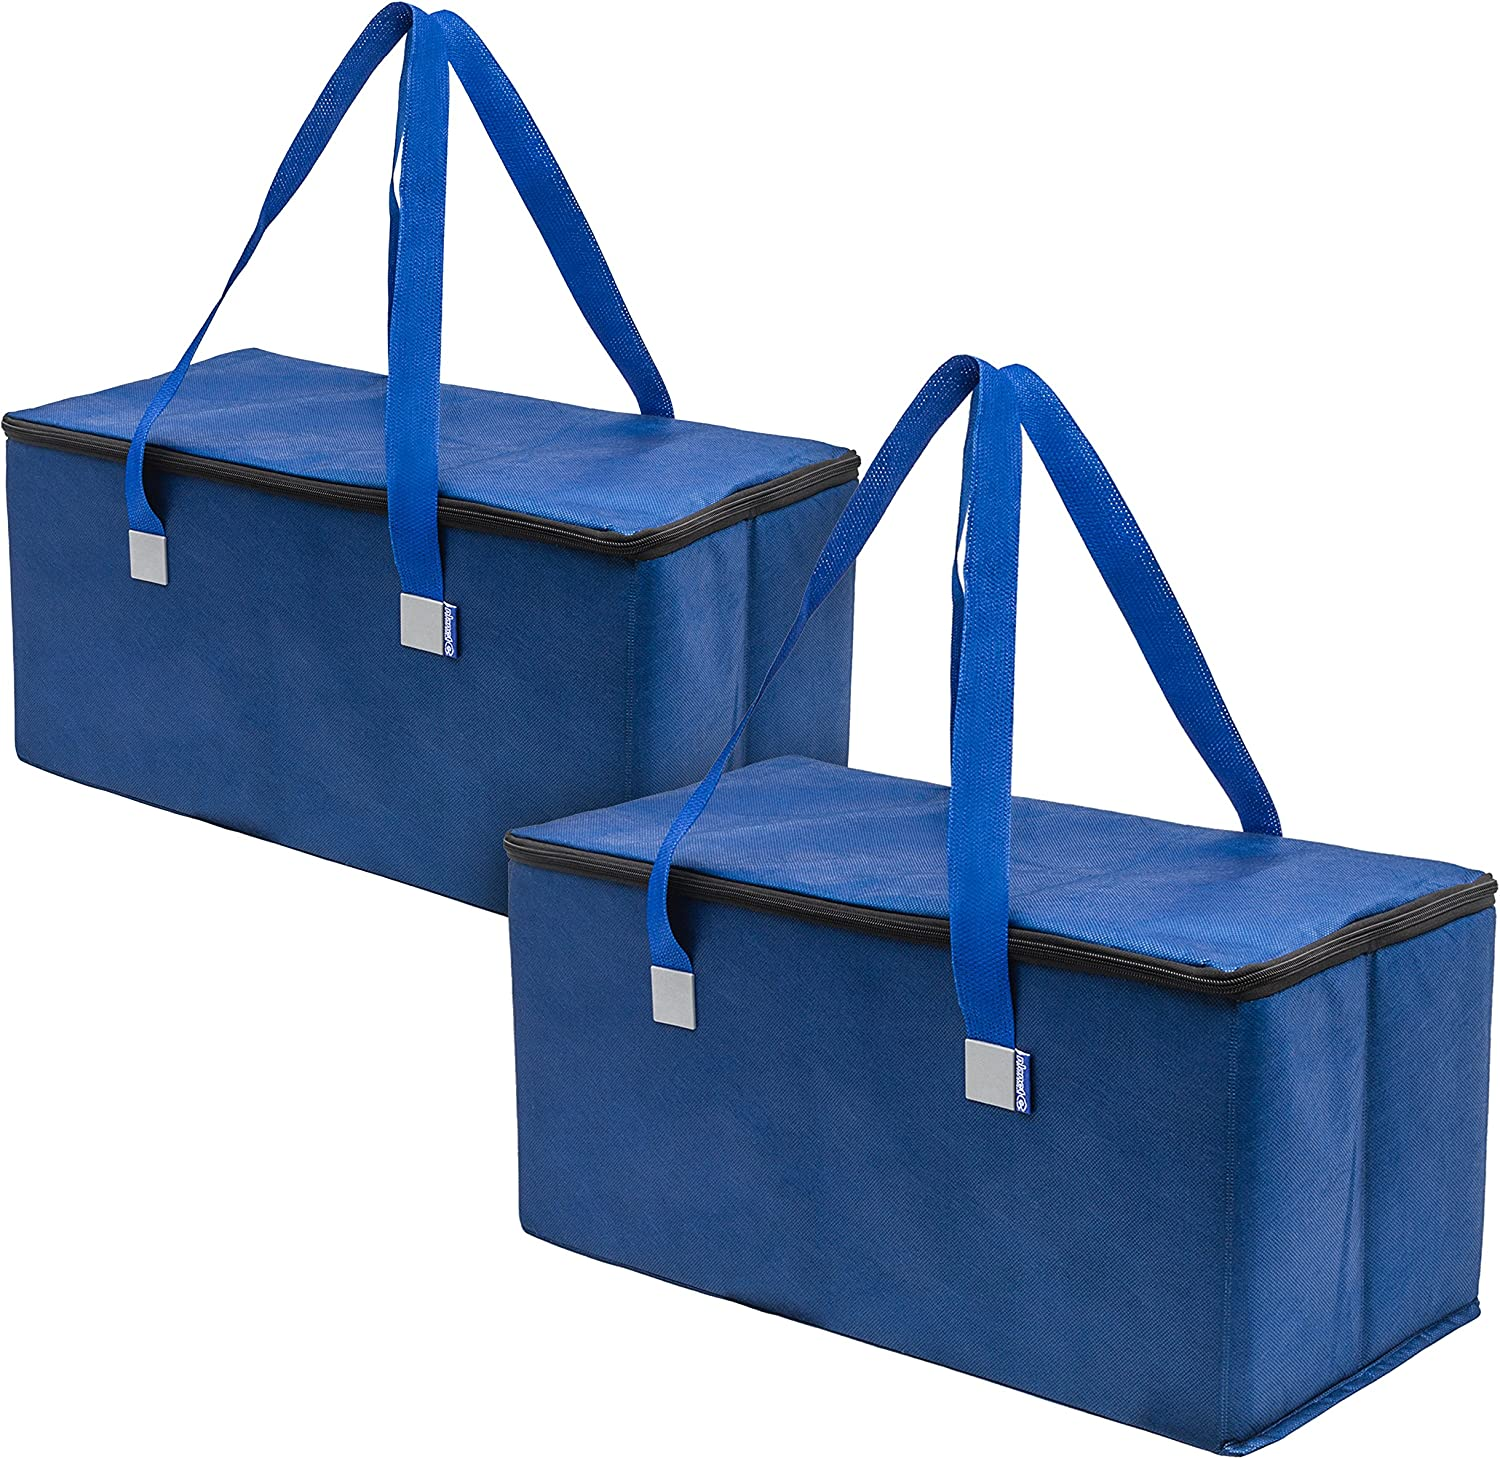 Planet E Reusable Grocery Shopping Bags Trunk Size Extra Large Collapsible Insulated zippered Coolers with Reinforced Bottoms Made of Recycled Plastic (Pack of 2)